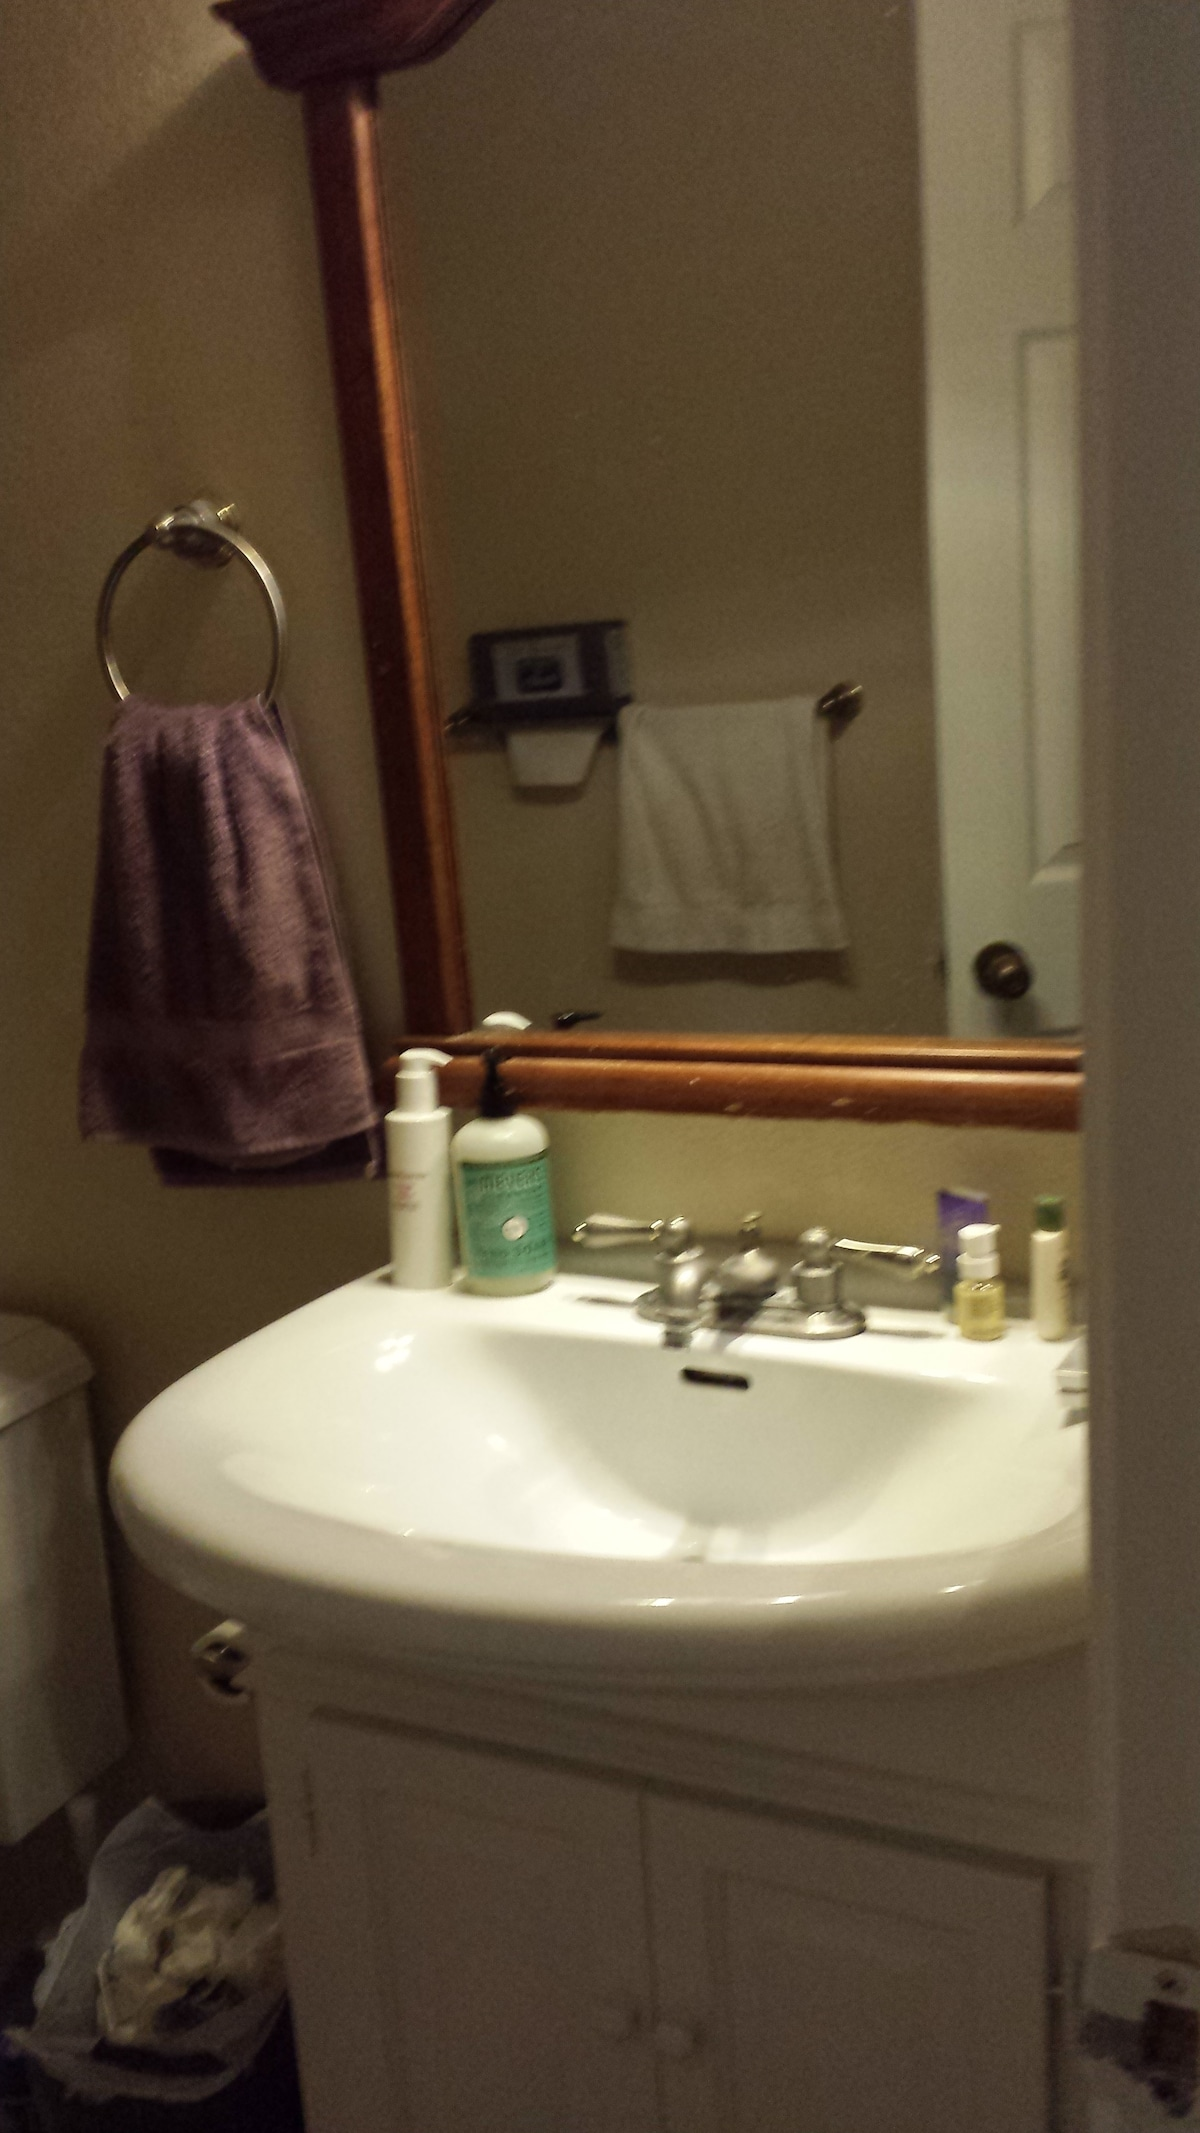 Sink and mirror shared with another roommmate